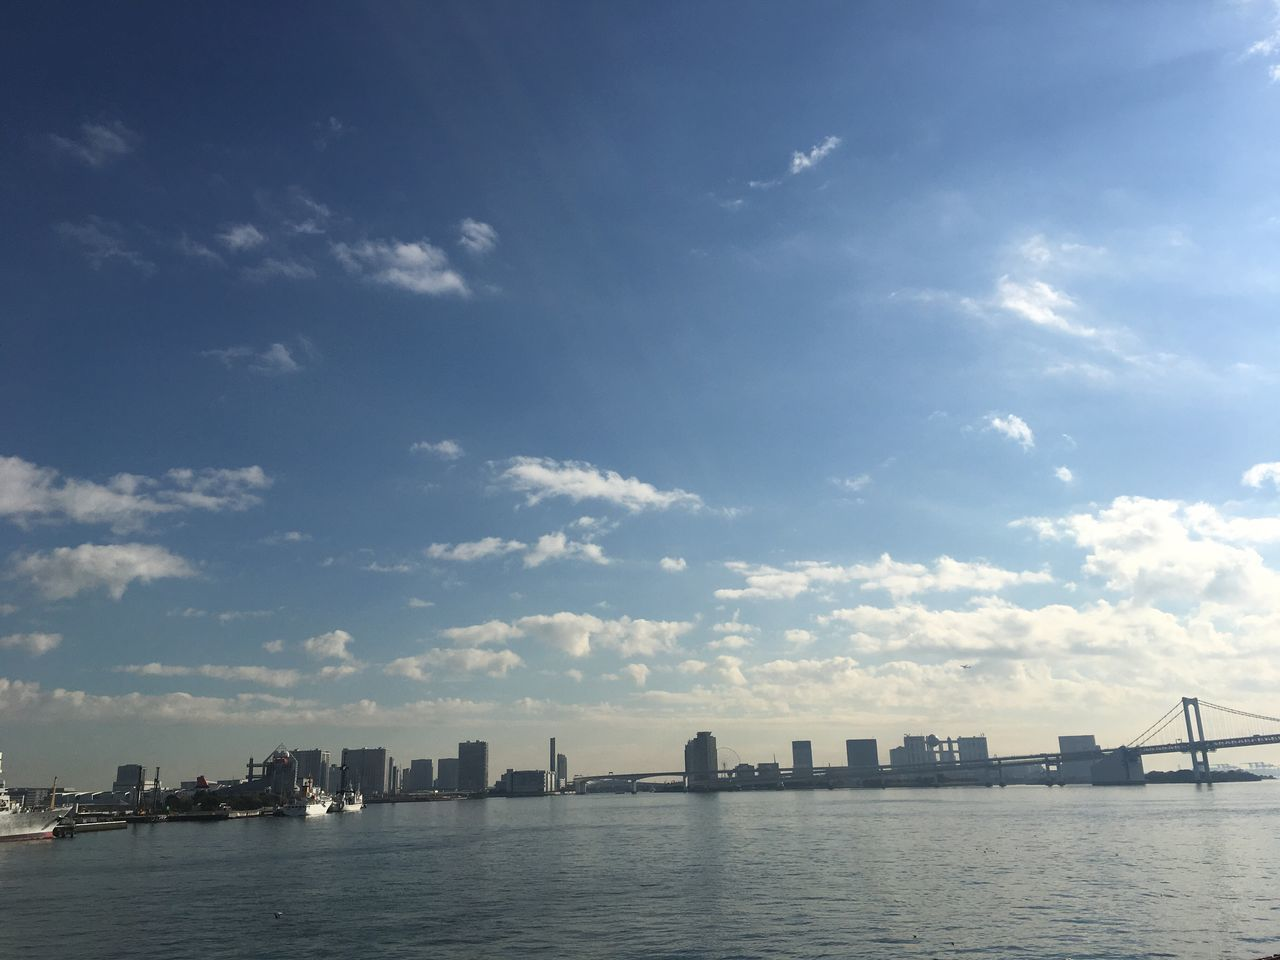 Tokyo Bay Rainbow Bridge Shining Sea And Sky Finding New Frontiers